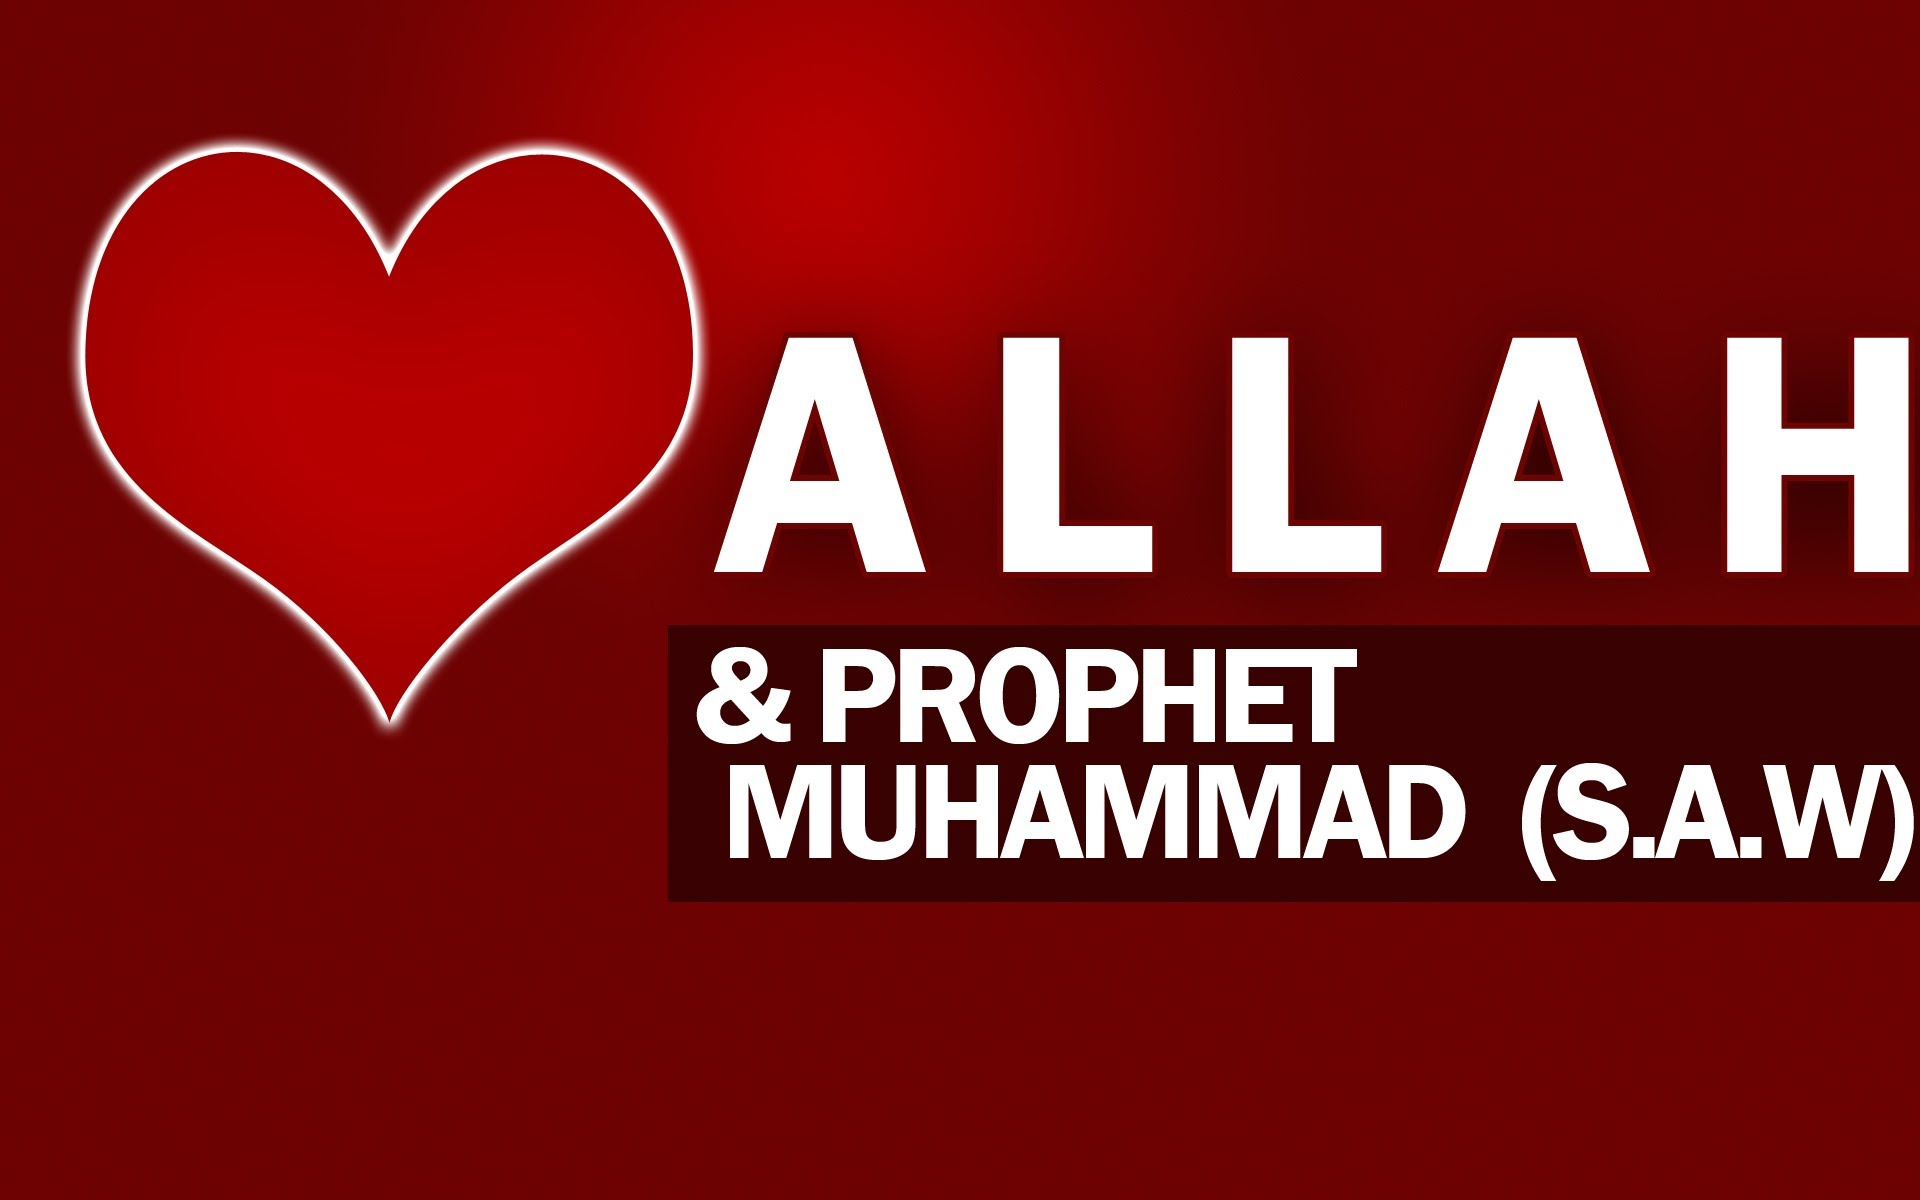 Falls Hd Wallpaper Free Download Download I Love Allah And Muhammad Wallpaper Gallery